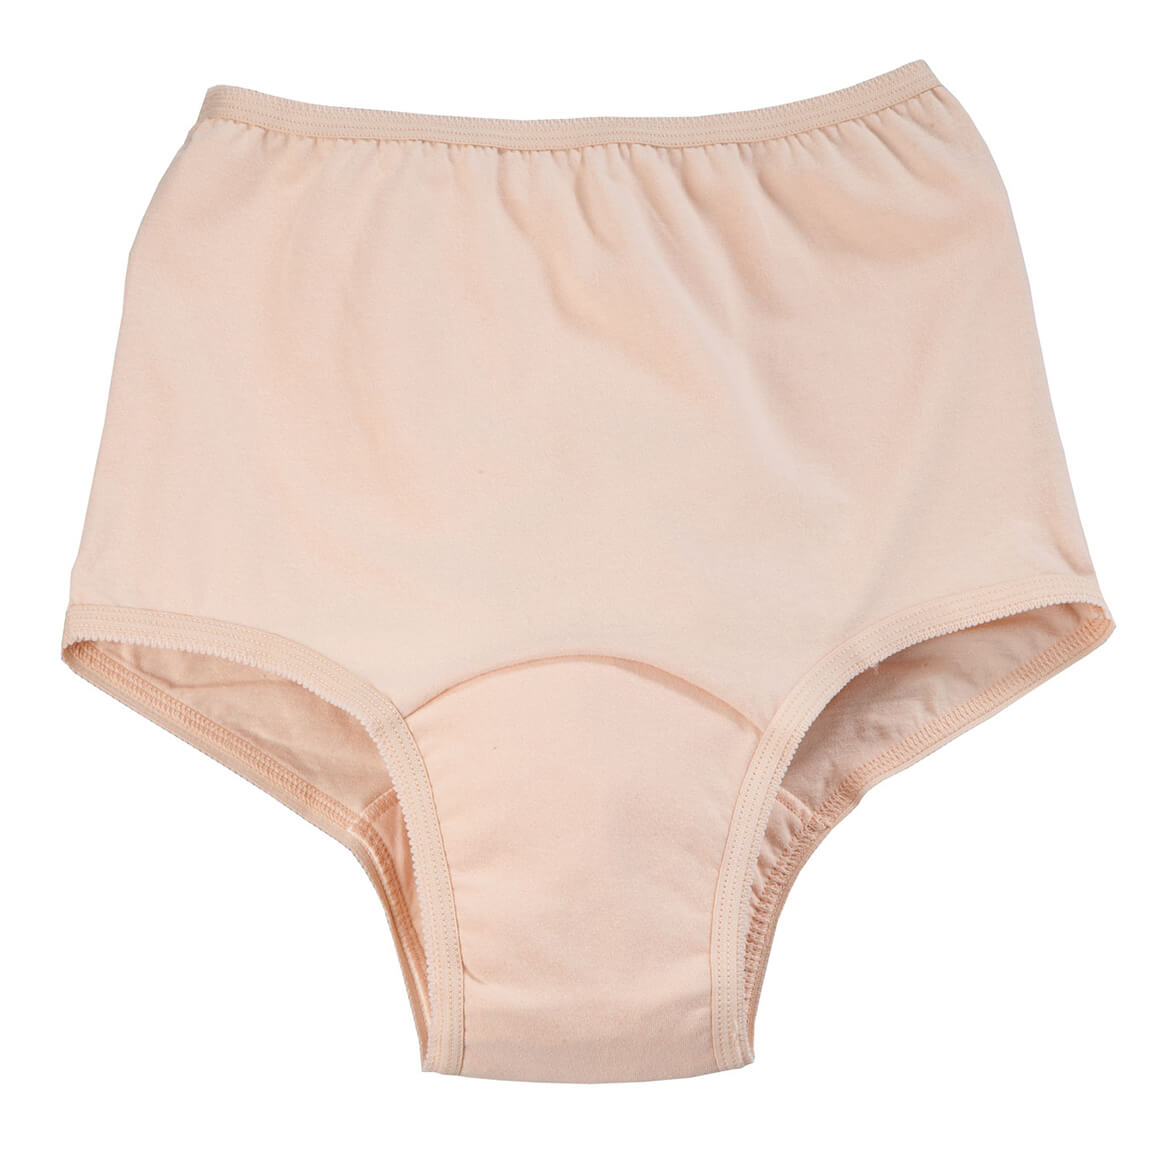 Incontinence Panties For Women - 20 Oz. Beige-348104